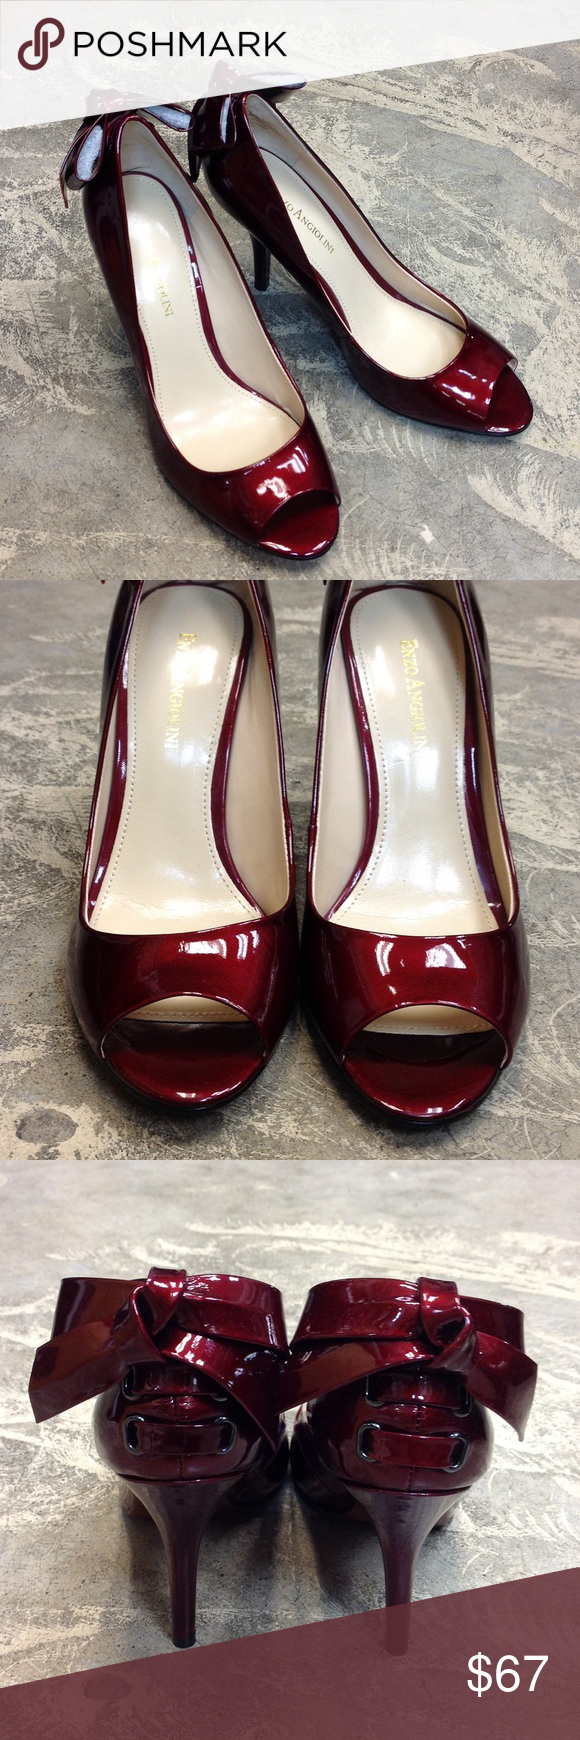 """ENZO ANGIOLINI """"Mistle"""" Pump O36 😍😍 These pumps are a GORGEOUS Christmas wine color! Patent leather with slight shimmer! US size 7.5, peep toe and aprox: 3.5inch heel! They have patent bows that """"lace"""" up the back of heels. ****NEW W/O TAGS! MINT CONDITION!! Still has foam shapers inside bows. Never been worn. Enzo Angiolini Shoes Heels"""